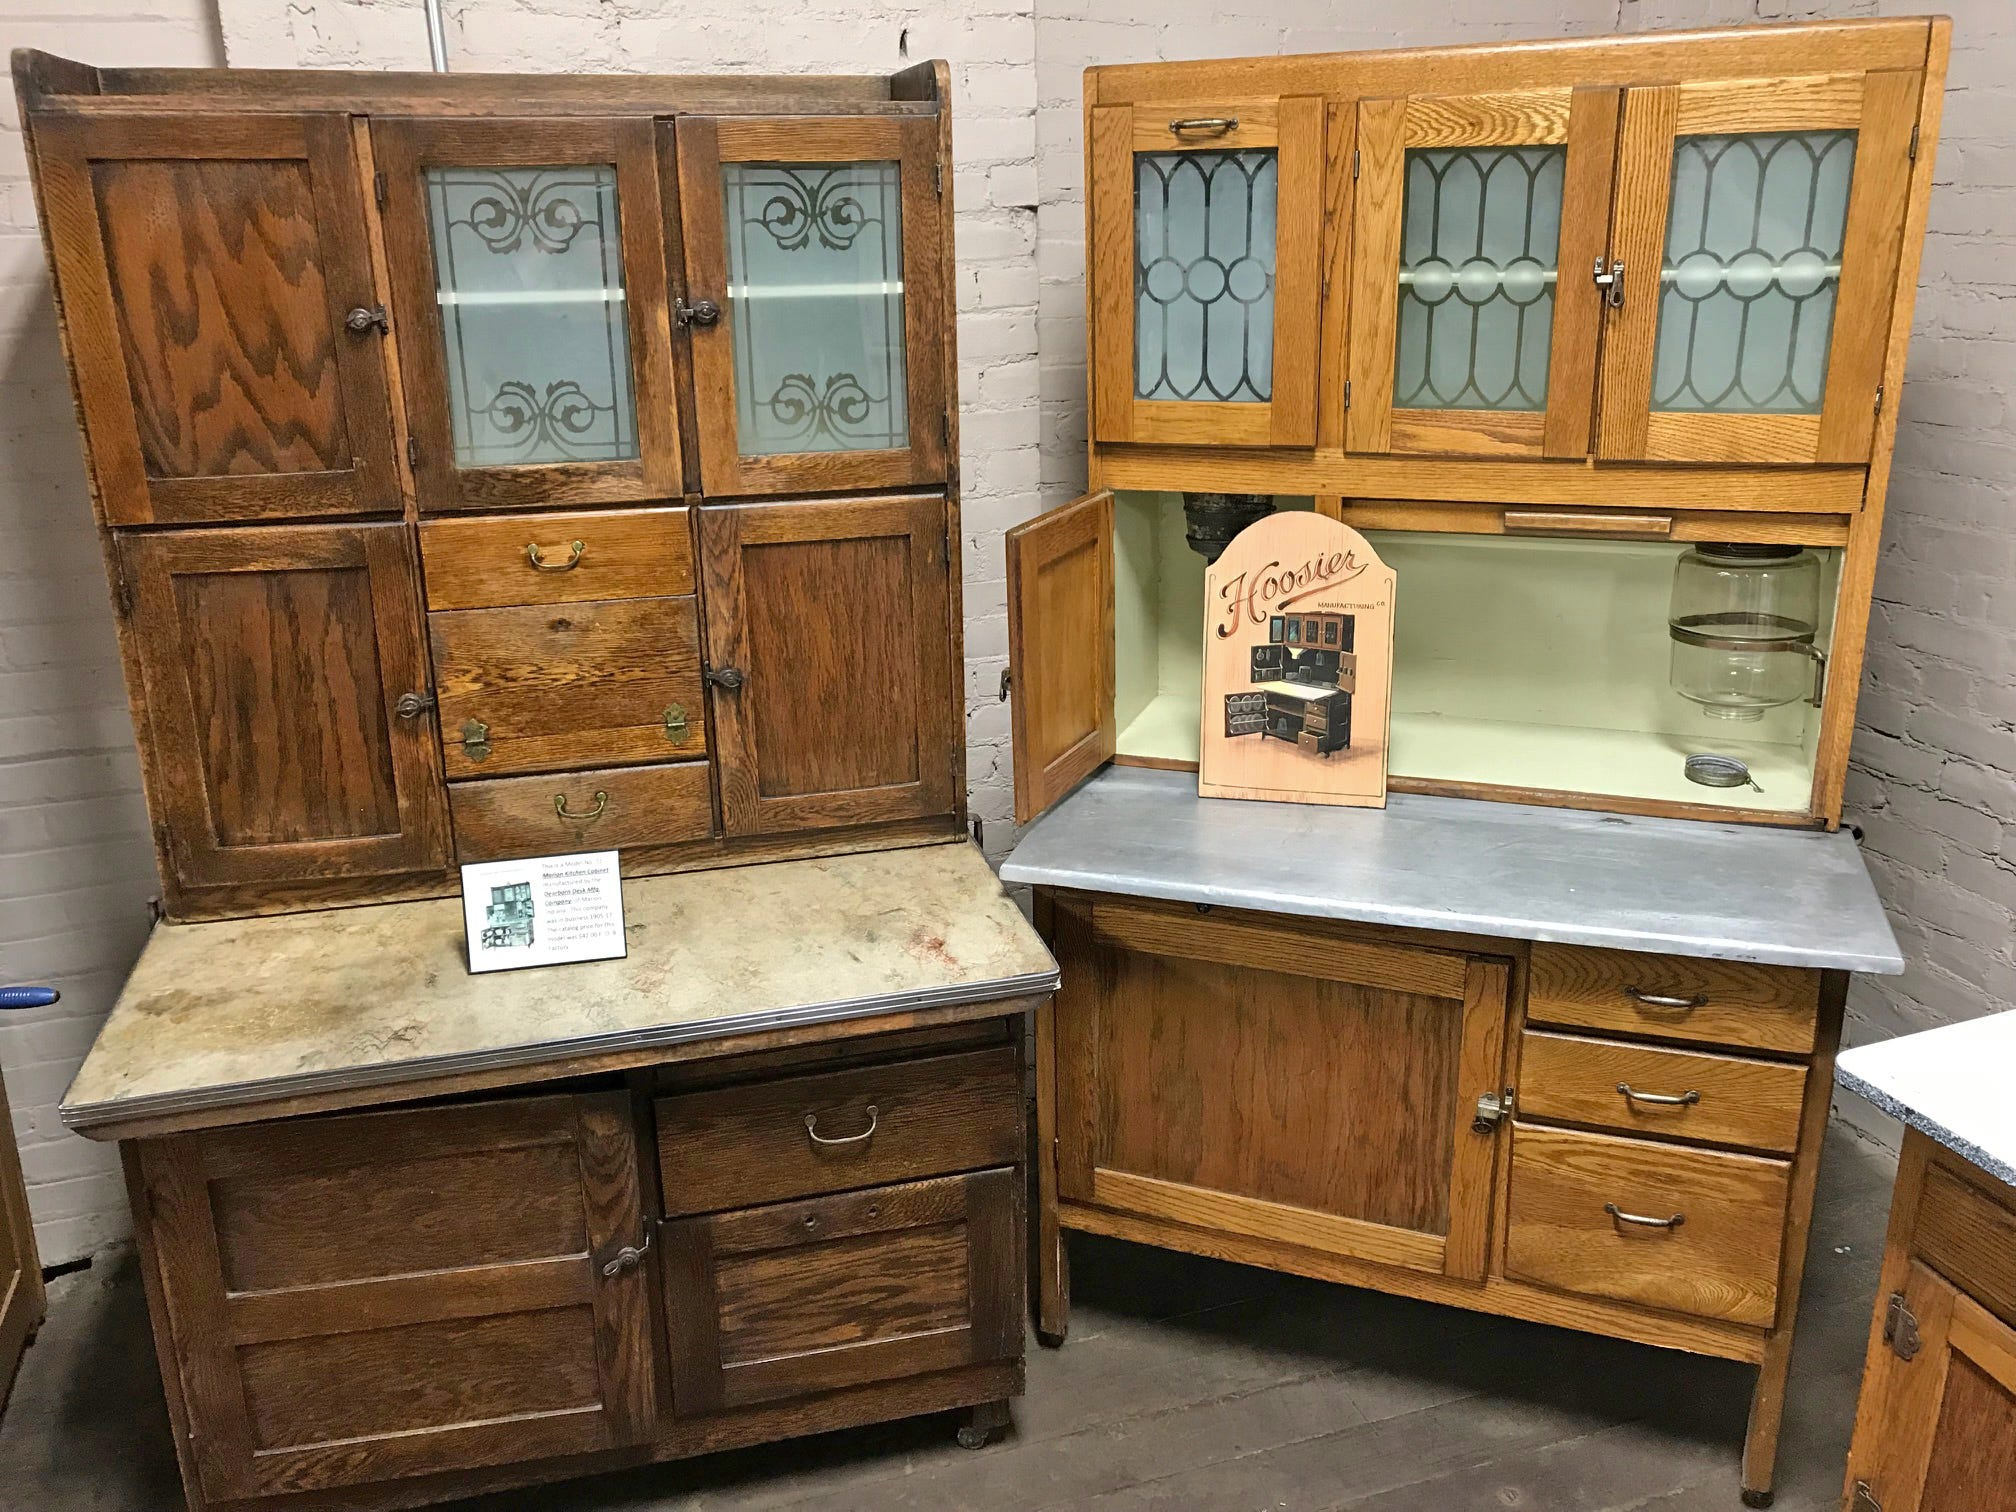 how the hoosier kitchen cabinet shaped the way you cook rh indystar com hoosier kitchen cabinet uk hoosier kitchen cabinet history